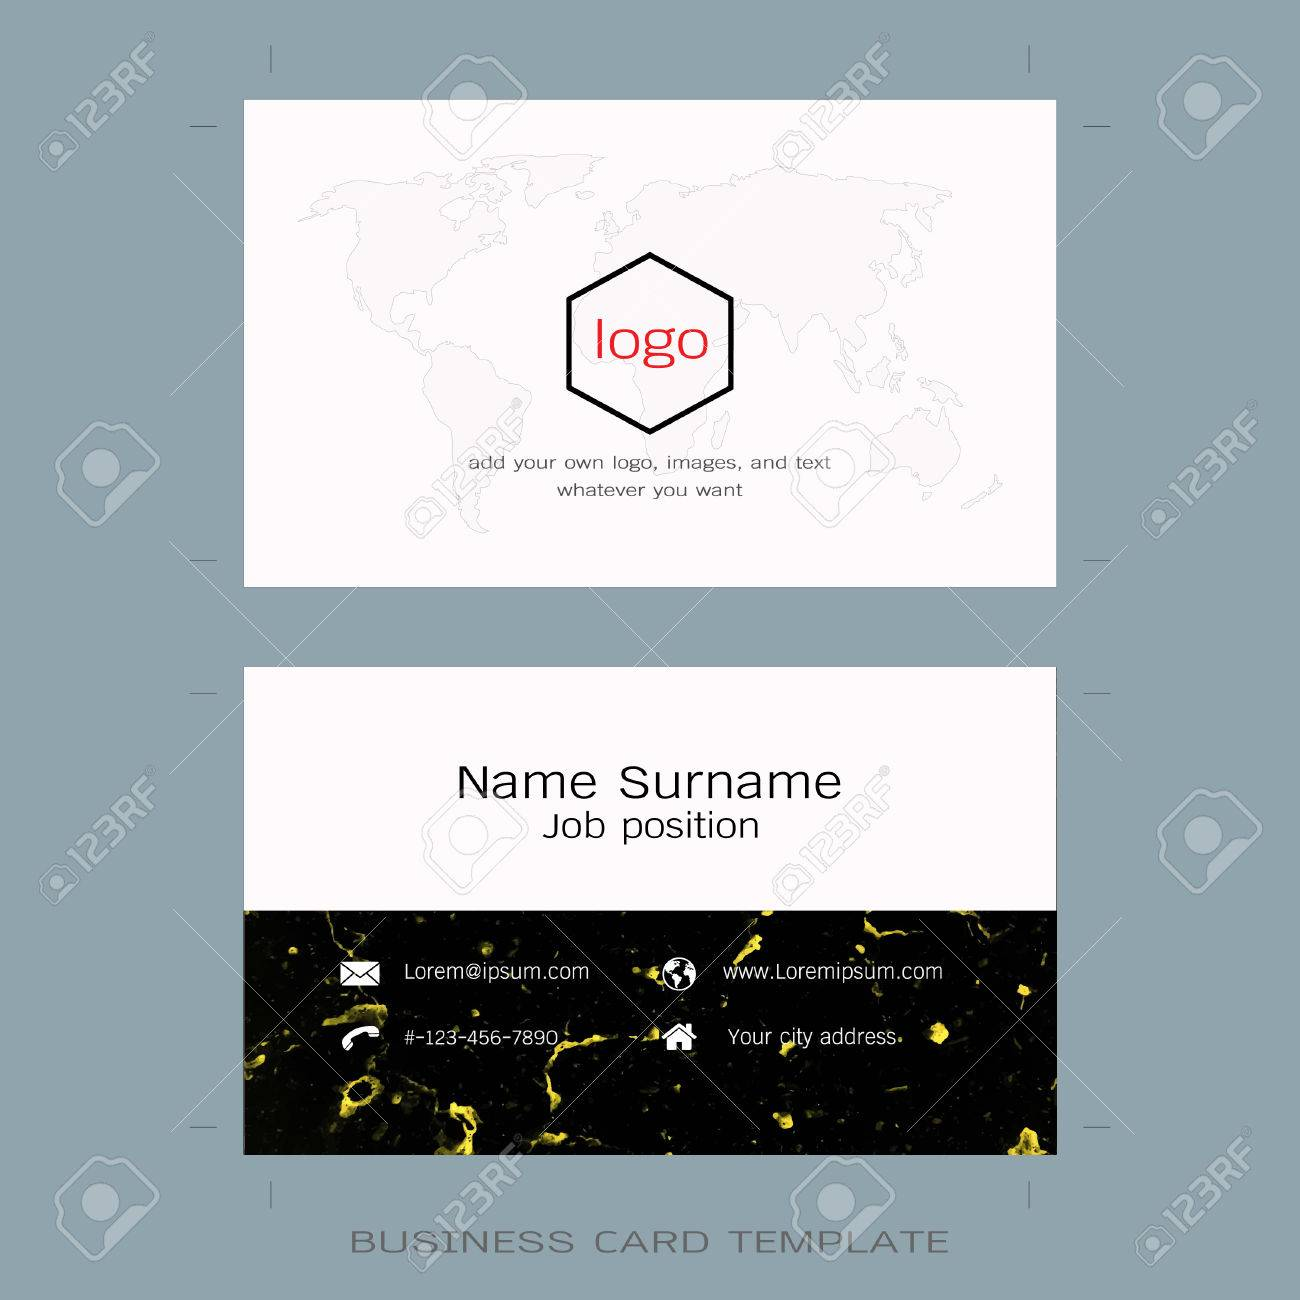 Modern Designer Business Card Layout Templates Marble Texture - Logo layout templates